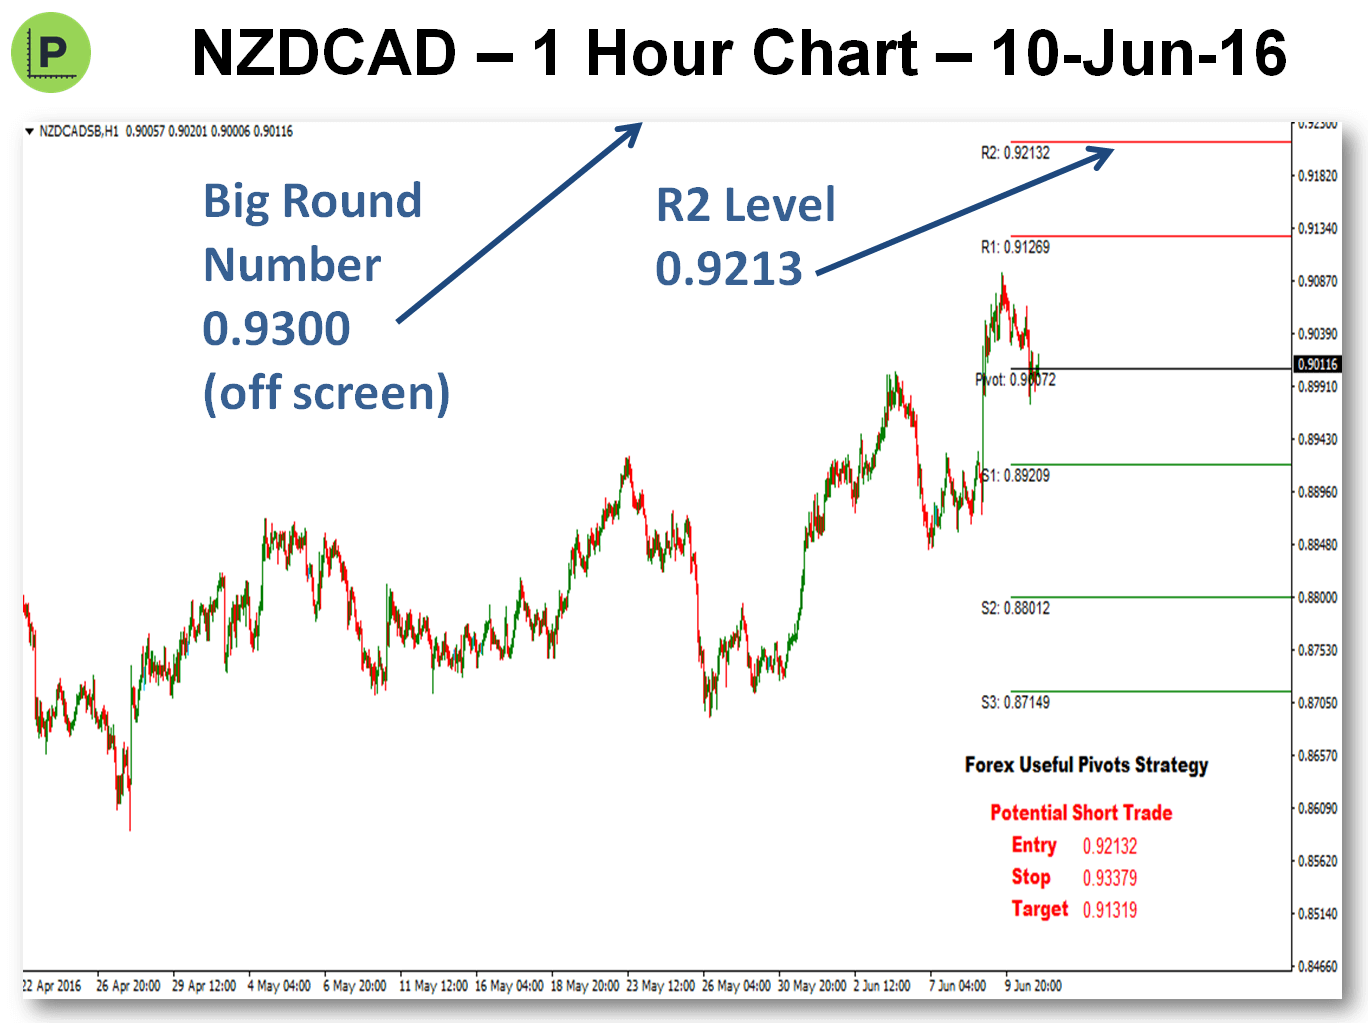 Looking For Pivots Trades - 11-Jun-16 NZDCAD